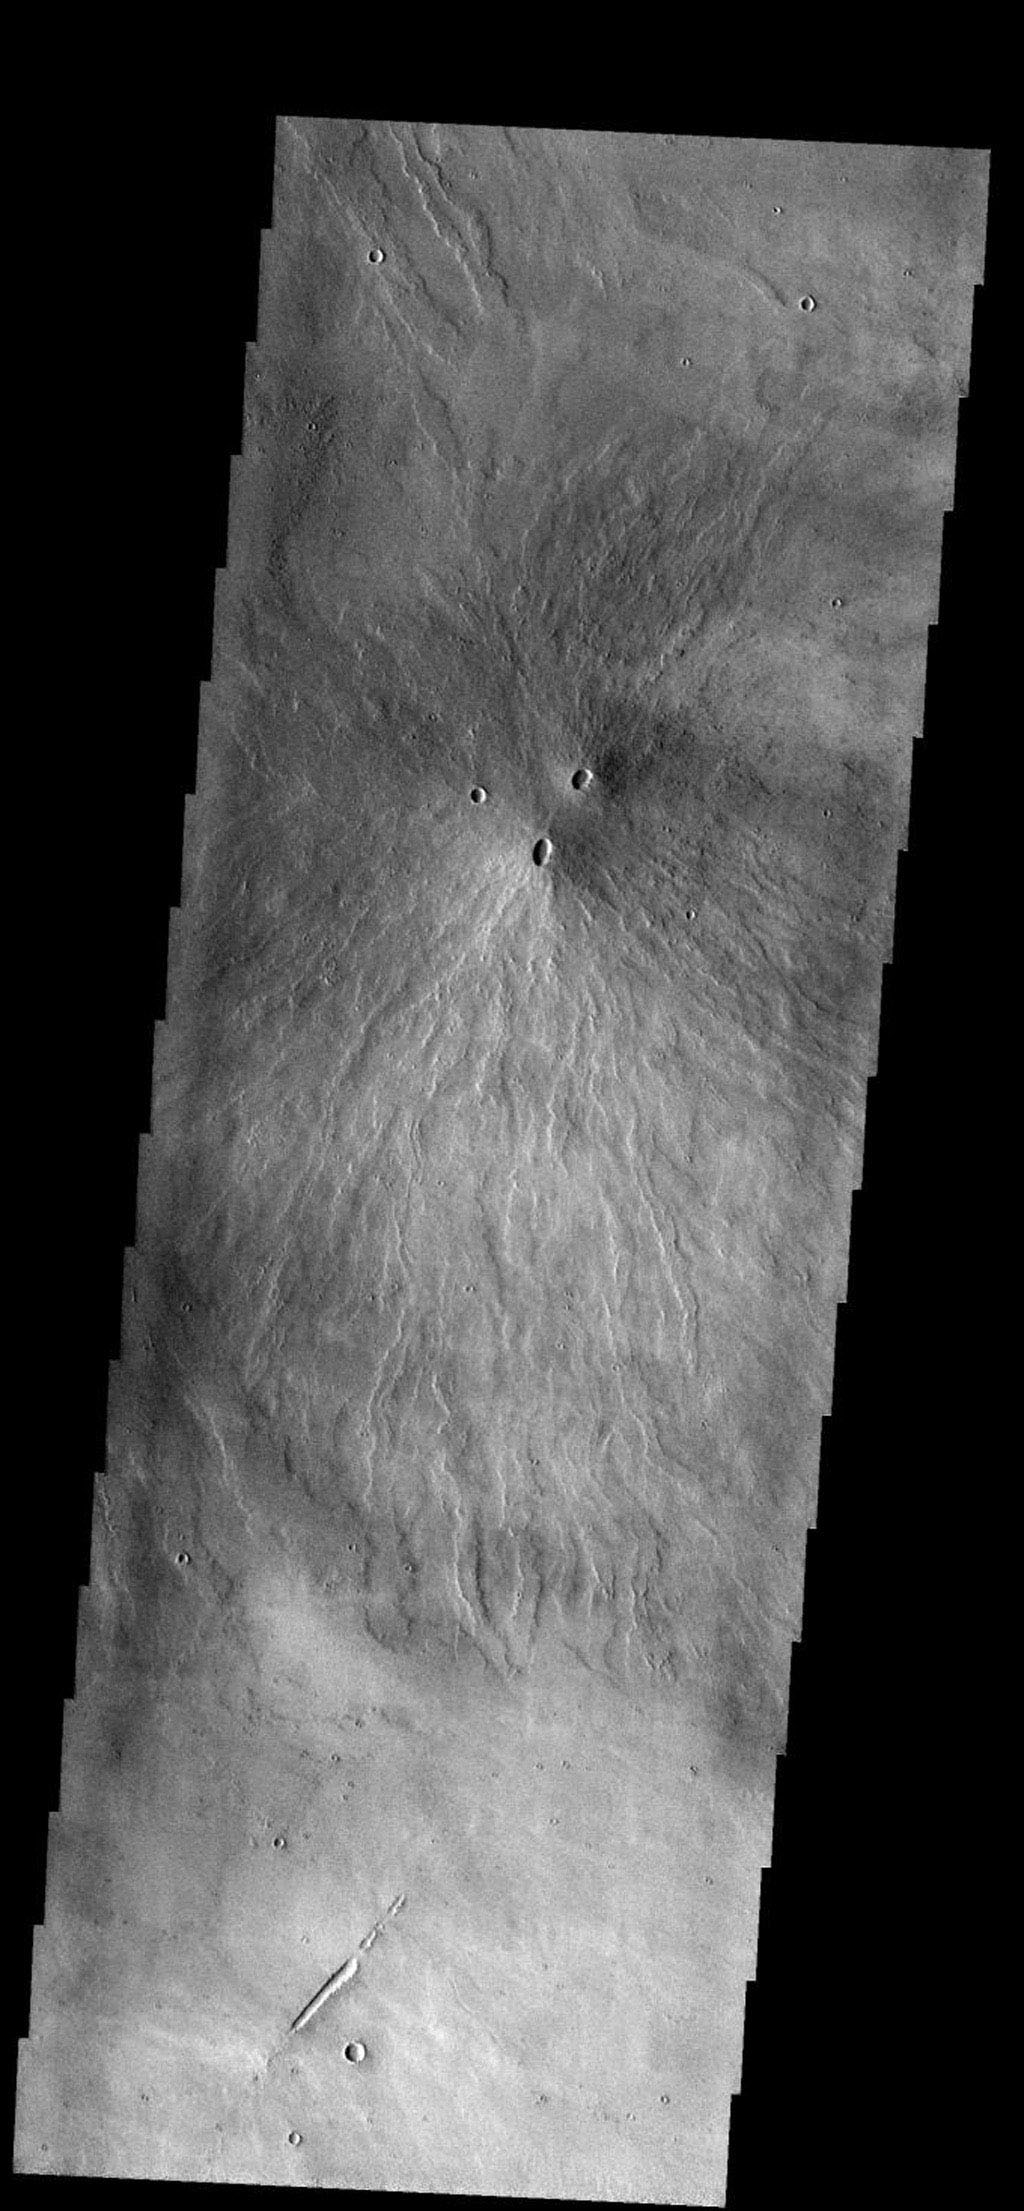 Two volcanic vents have erupted material to form this small volcano just south of Pavonis Mons on Mars as seen by NASA's 2001 Mars Odyssey.